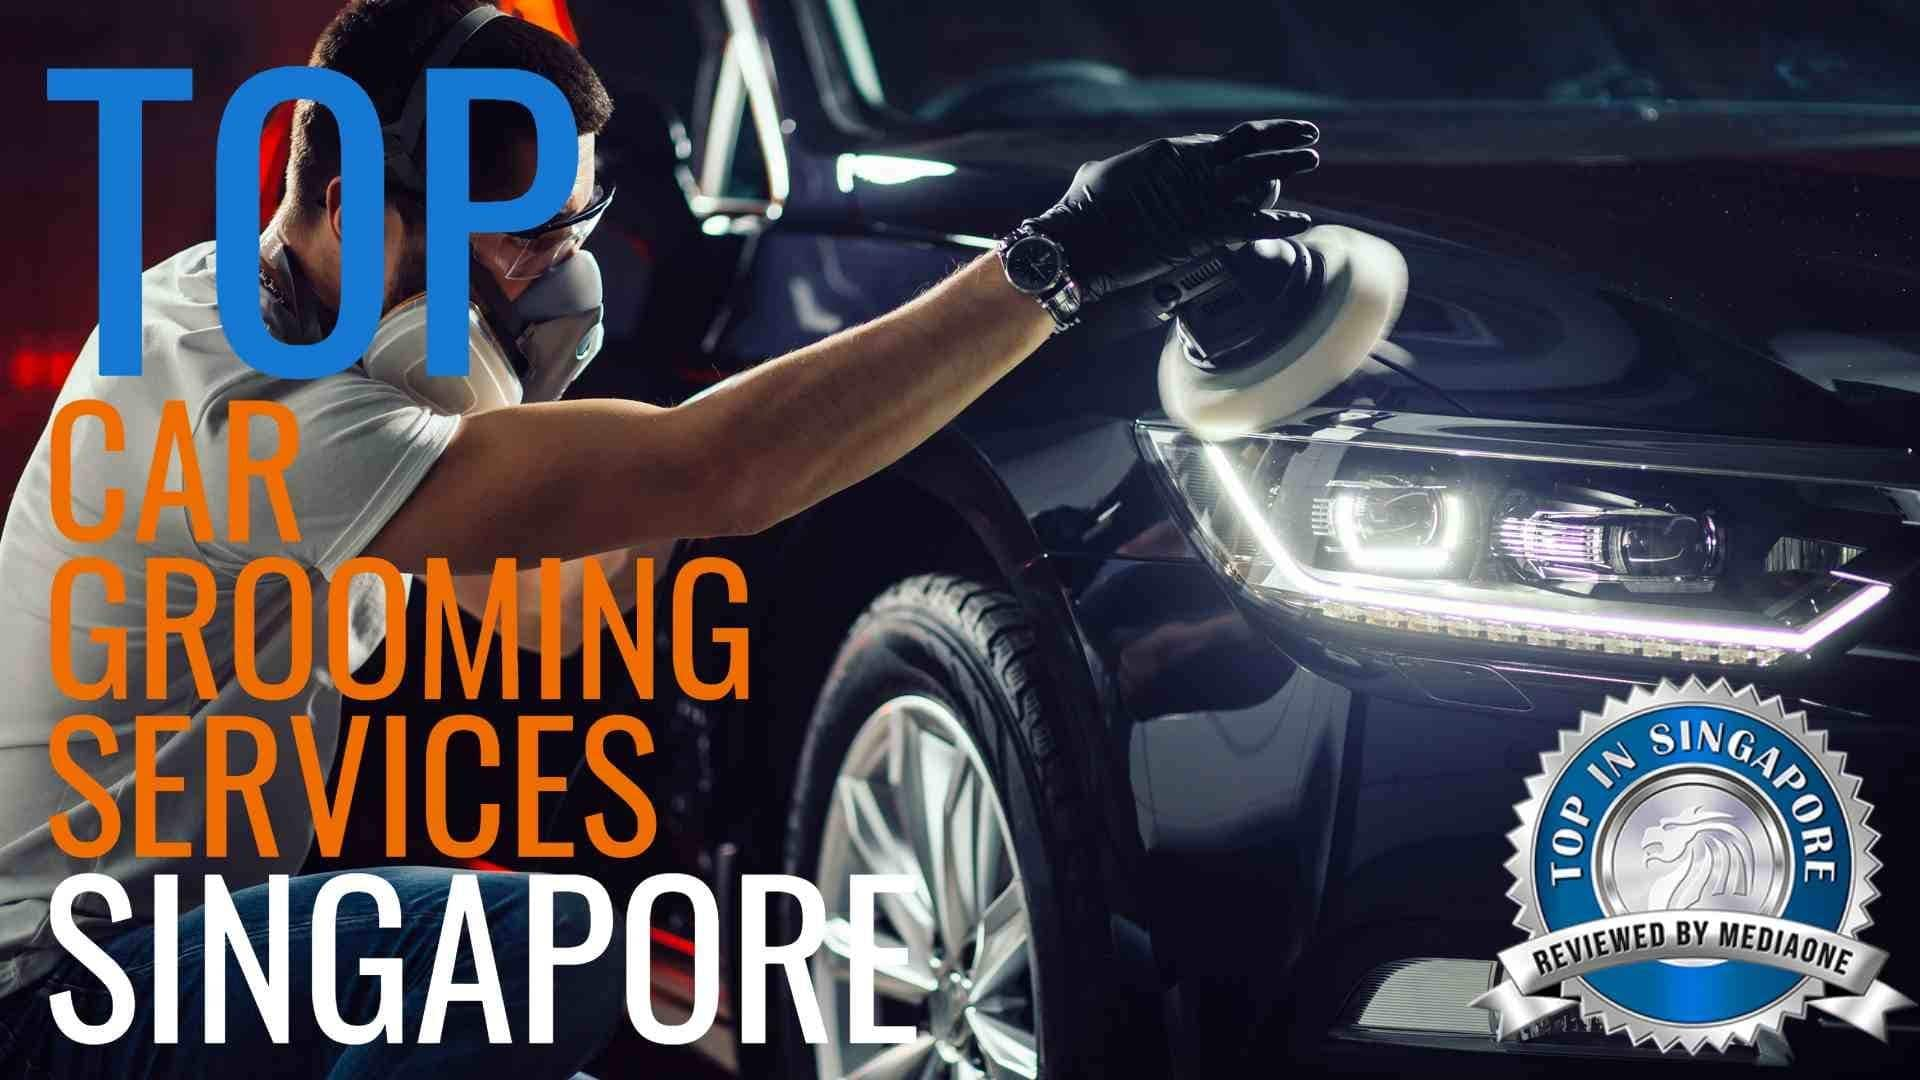 Top Car Grooming Services in Singapore